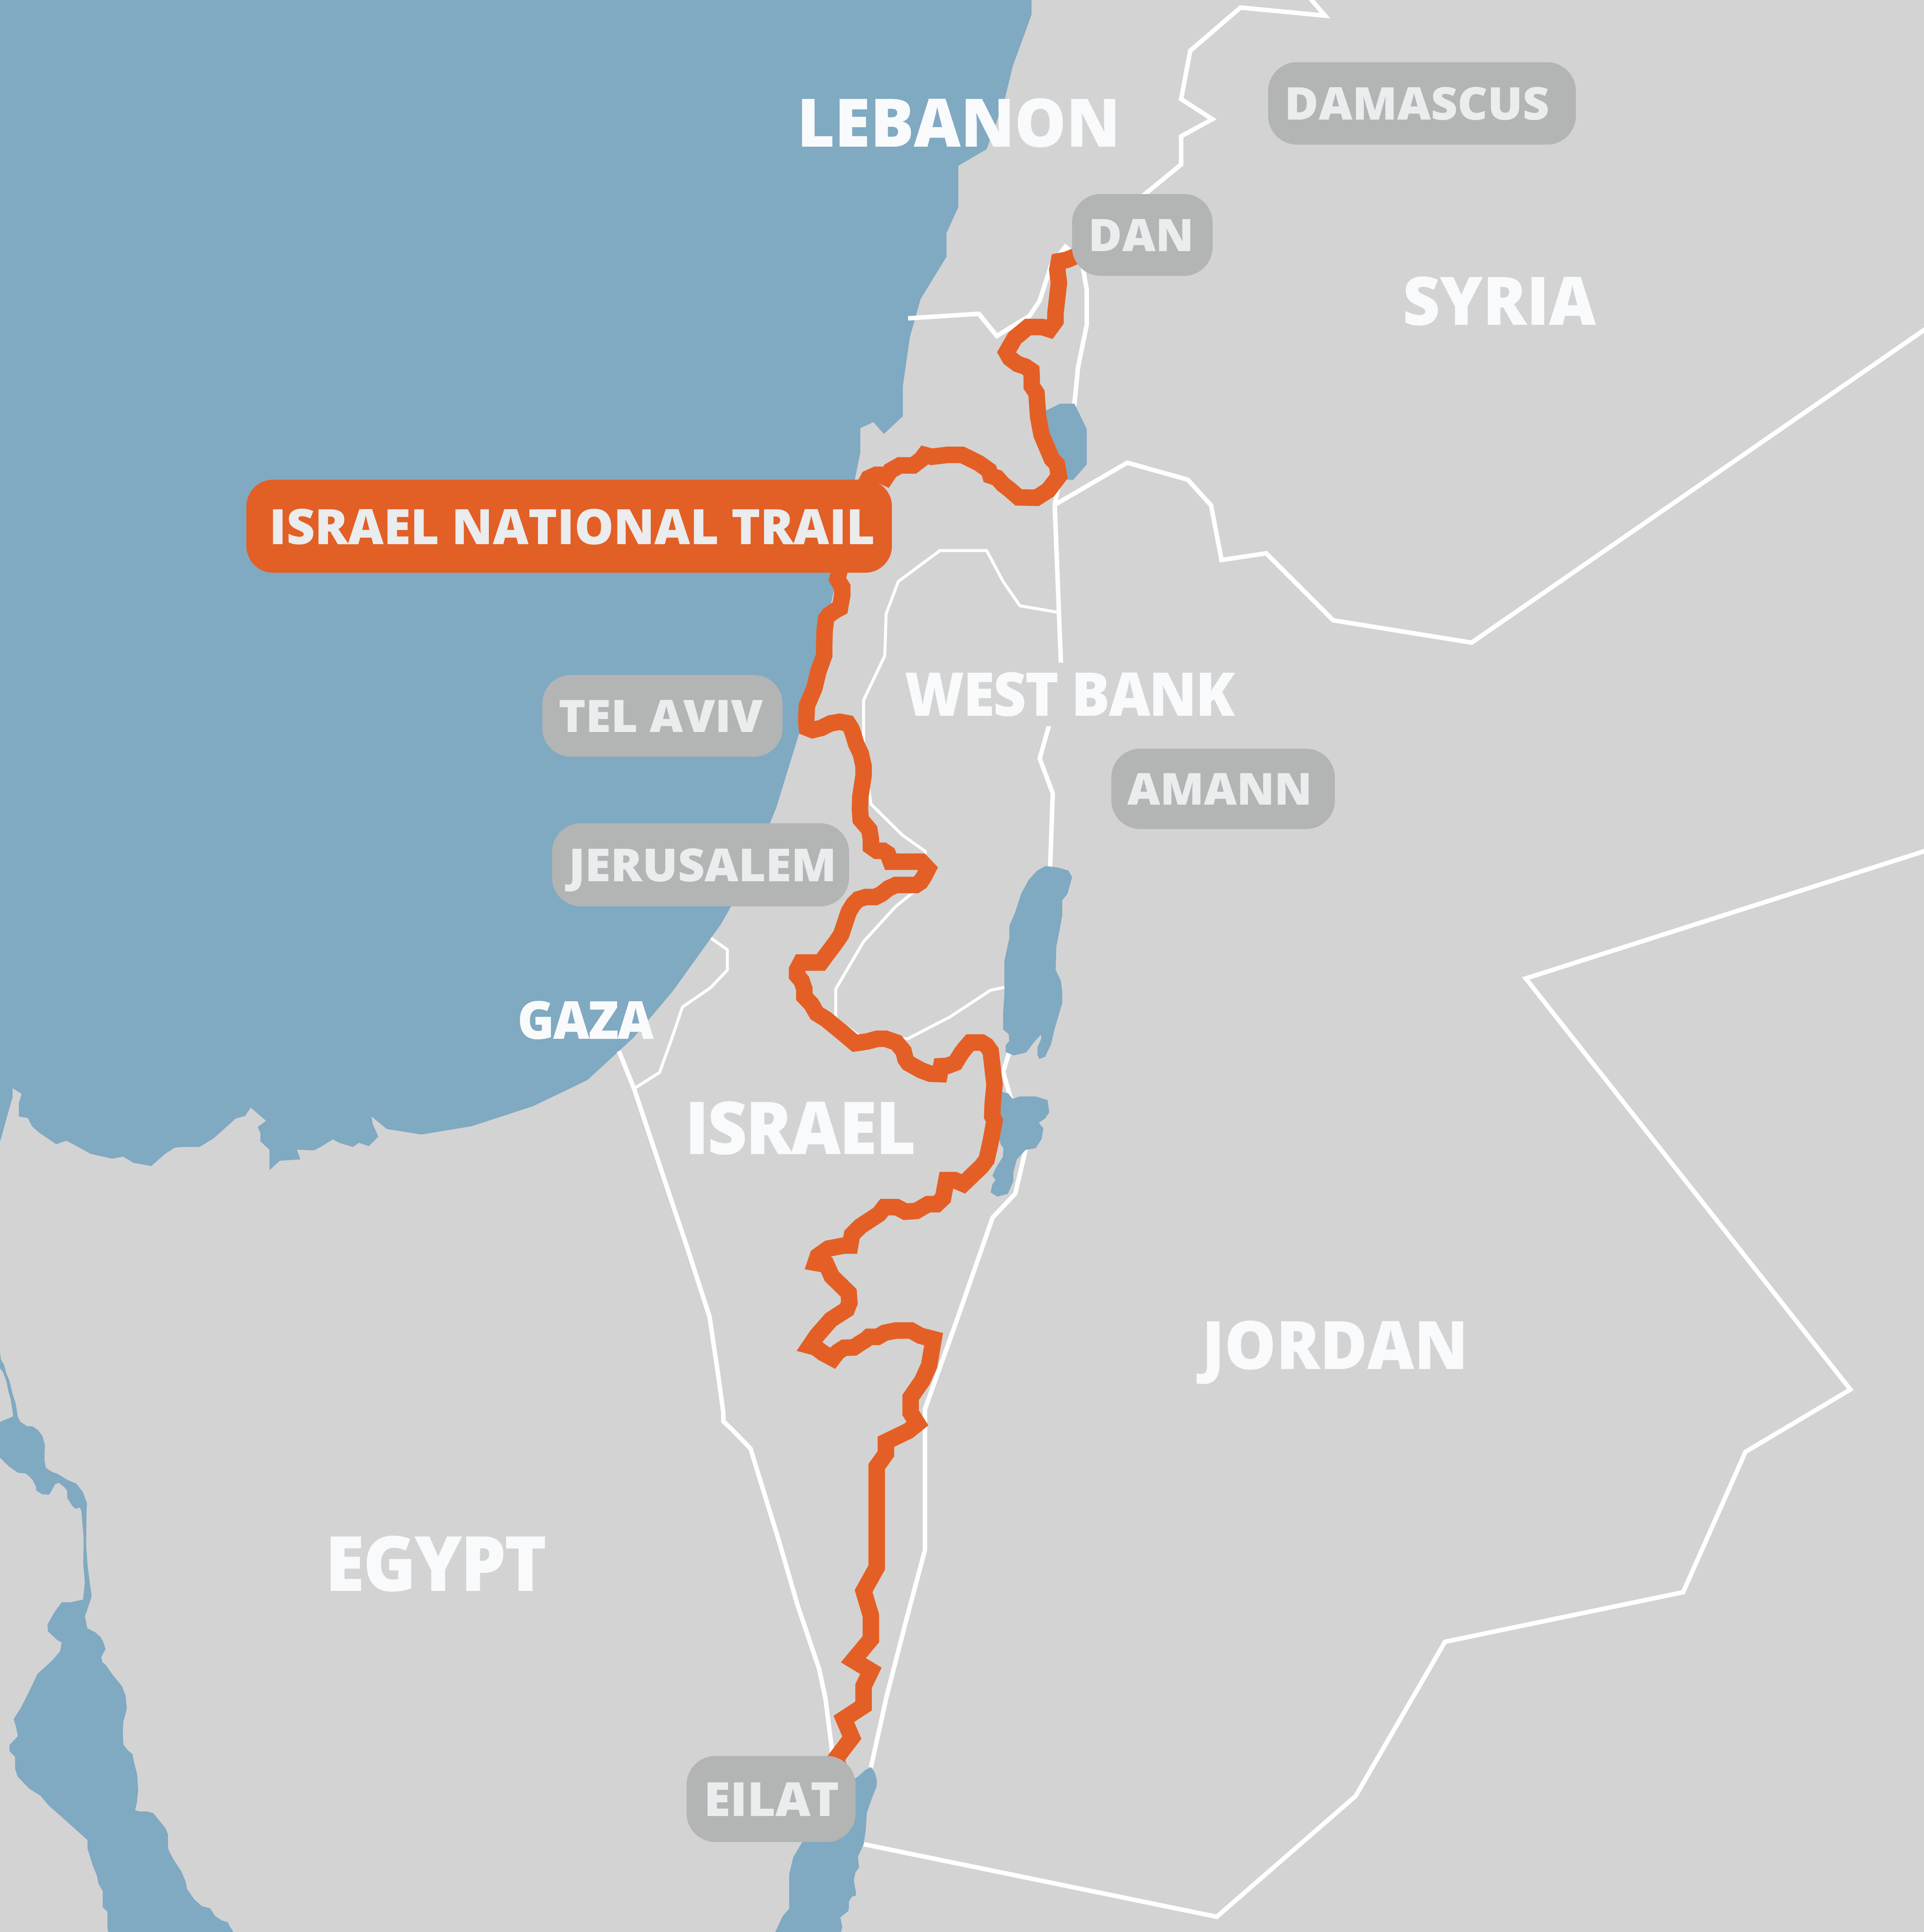 Map of the Israel National Trail and surrounding countries of Israel